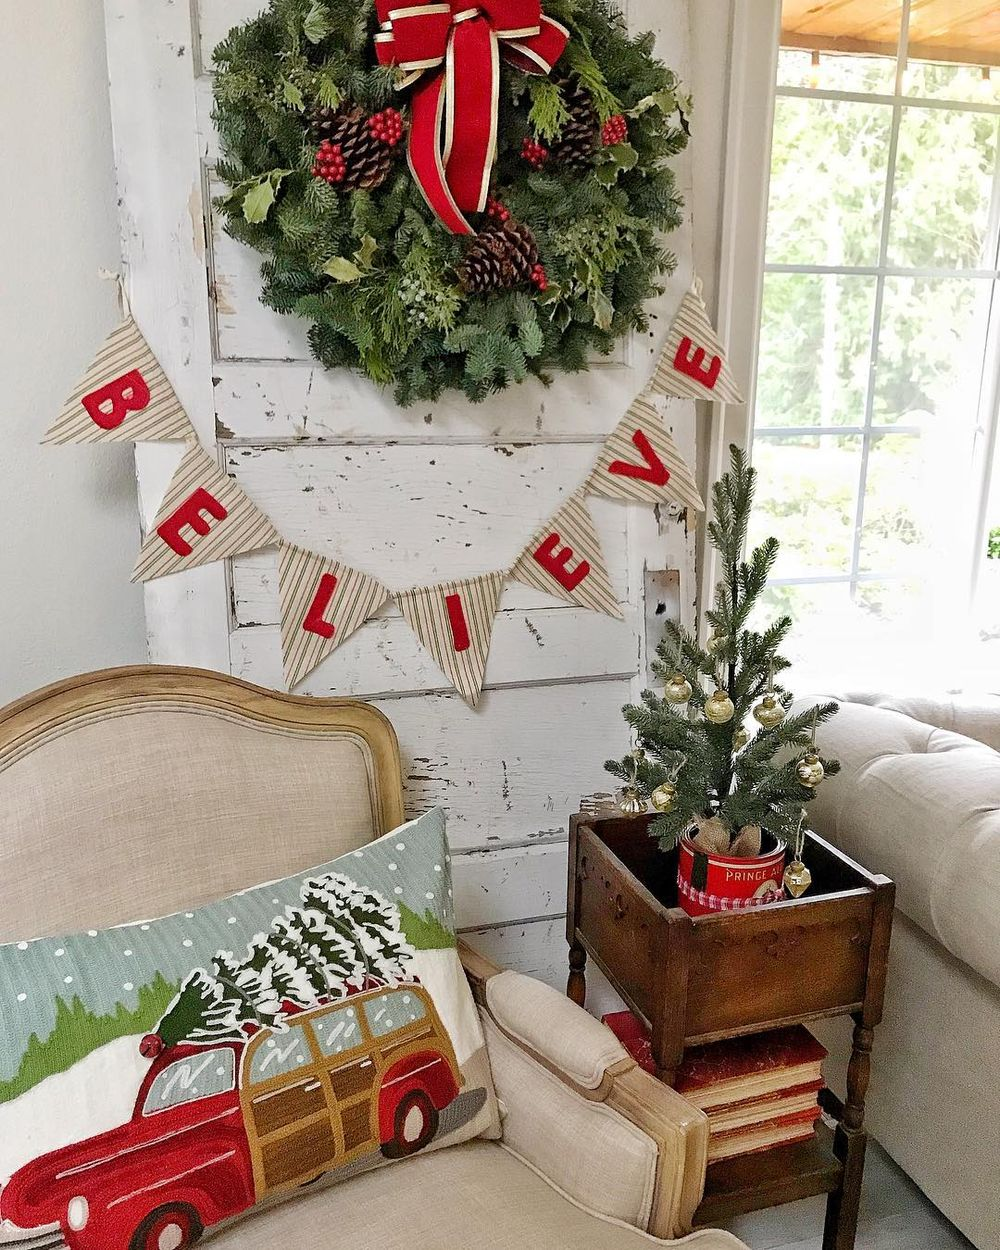 25 Essential Christmas Decorations You Must Own